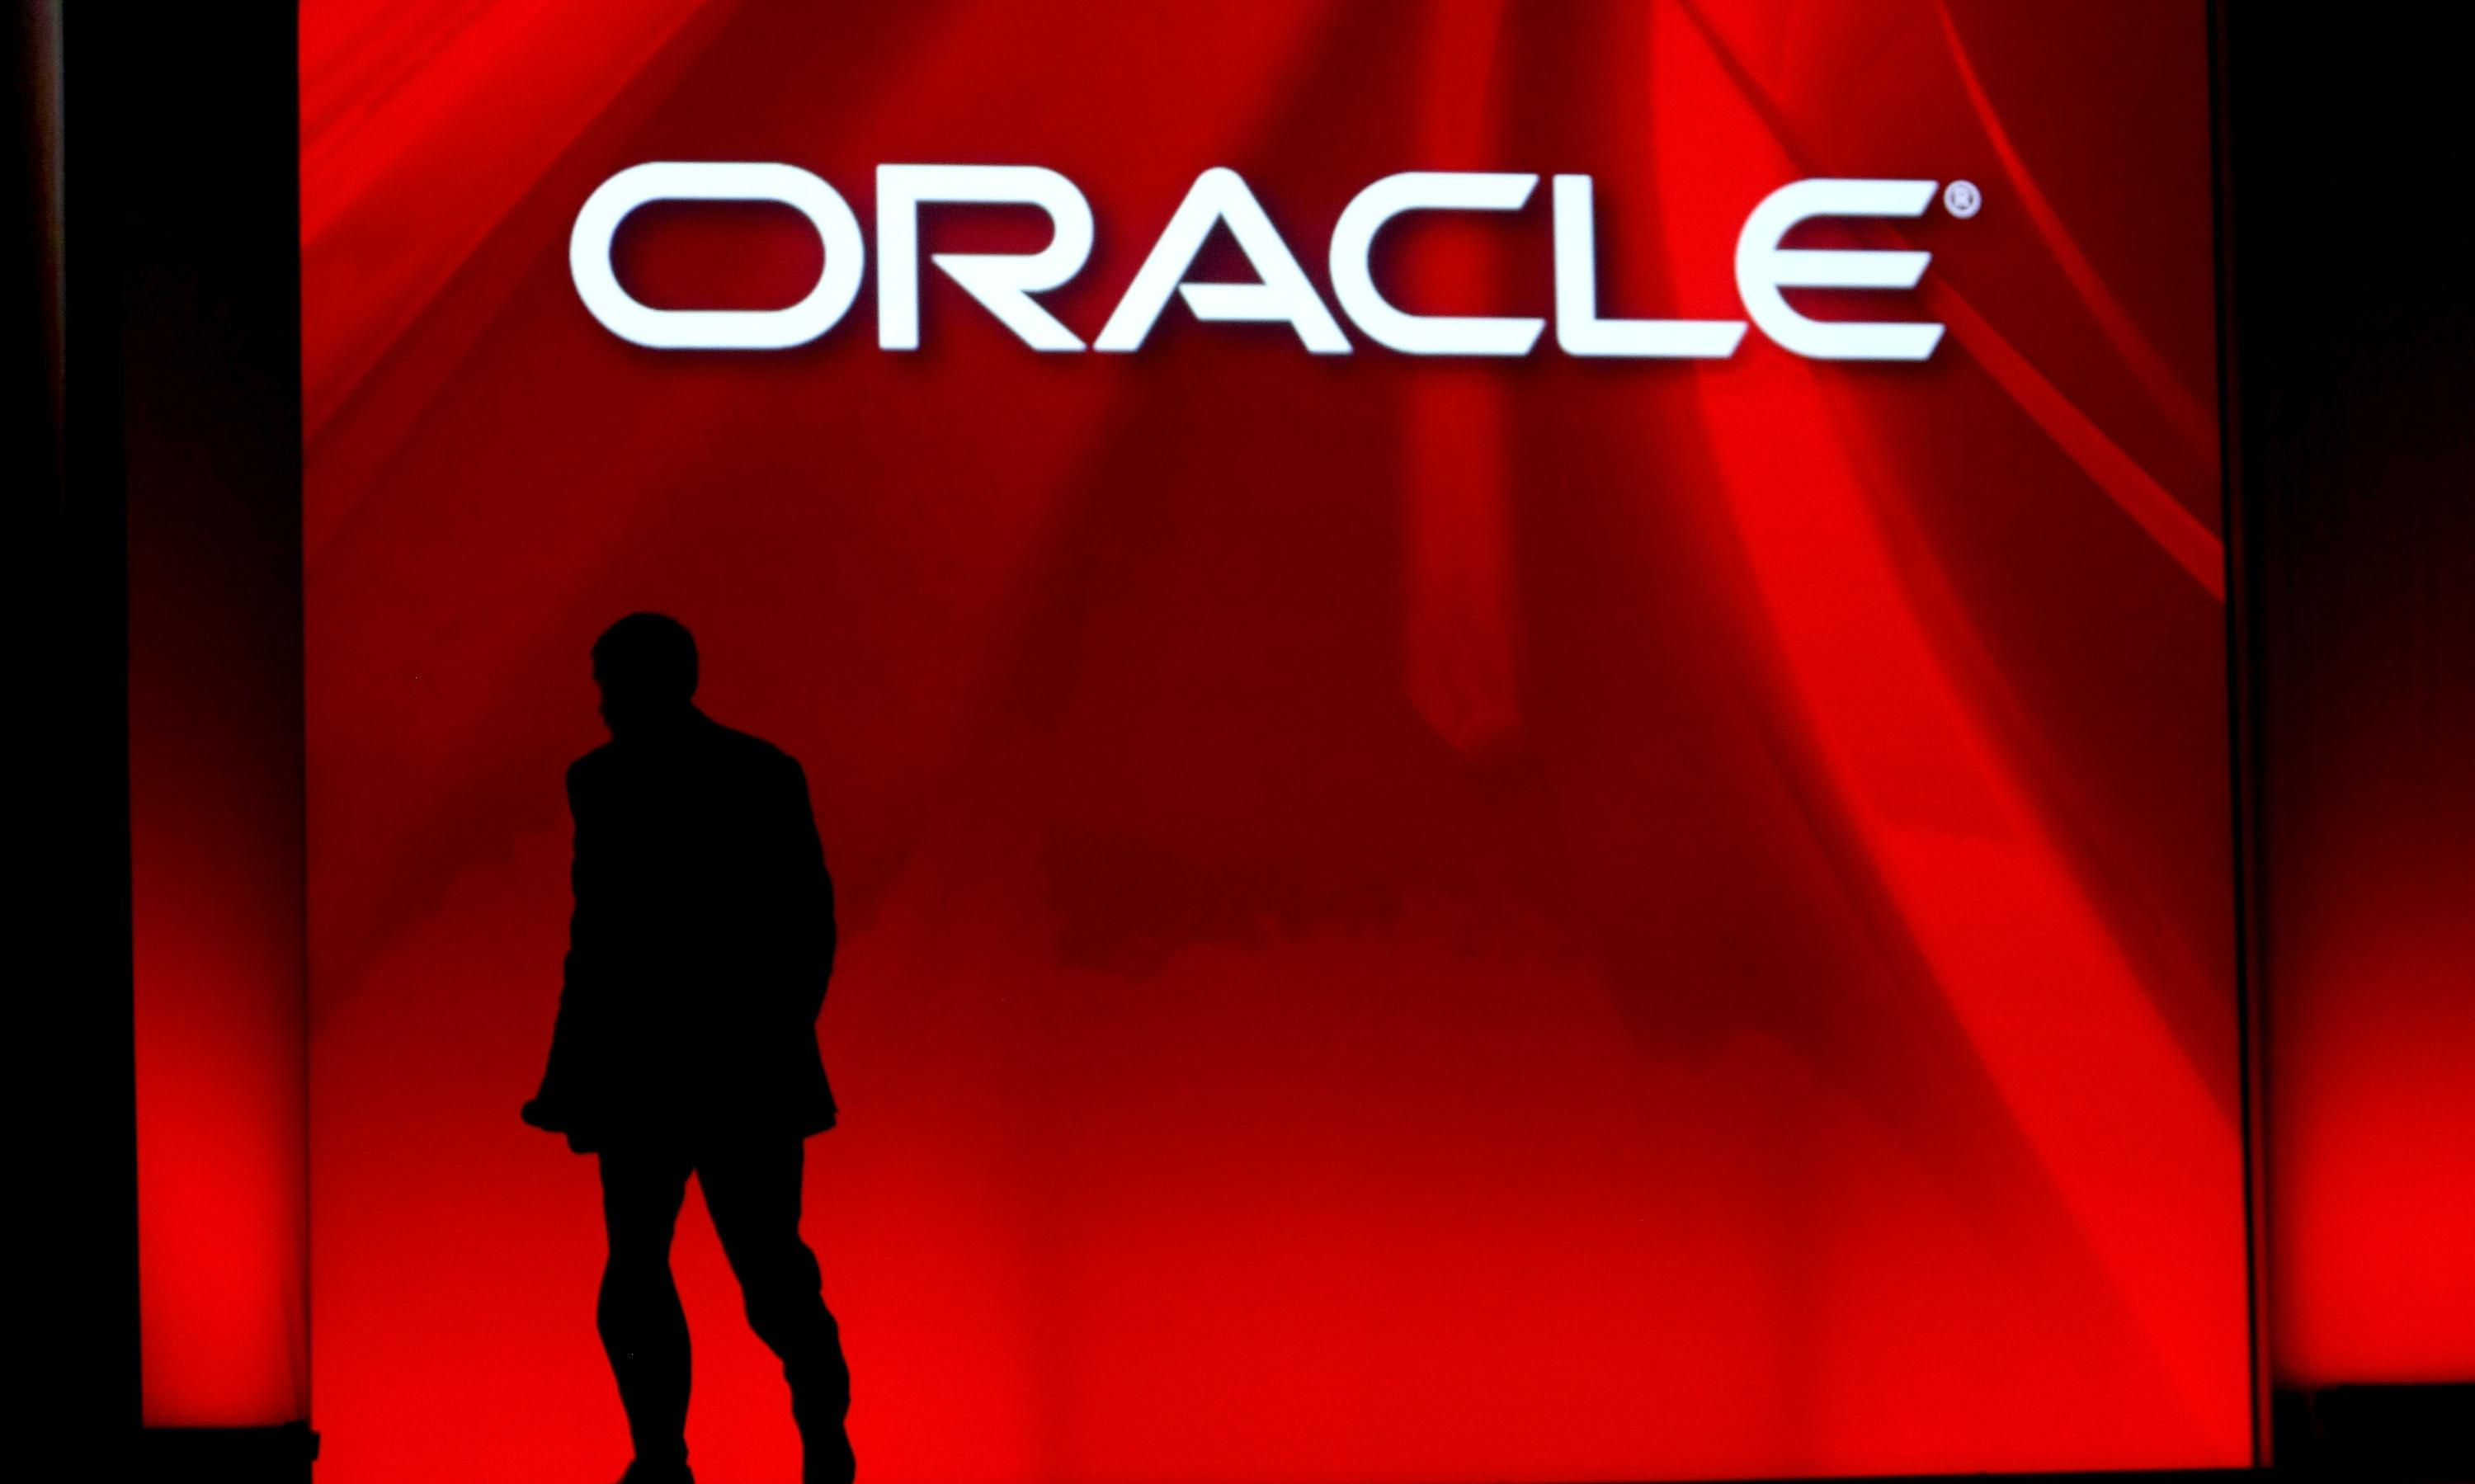 Oracle systematically underpaid thousands of women, lawsuit says